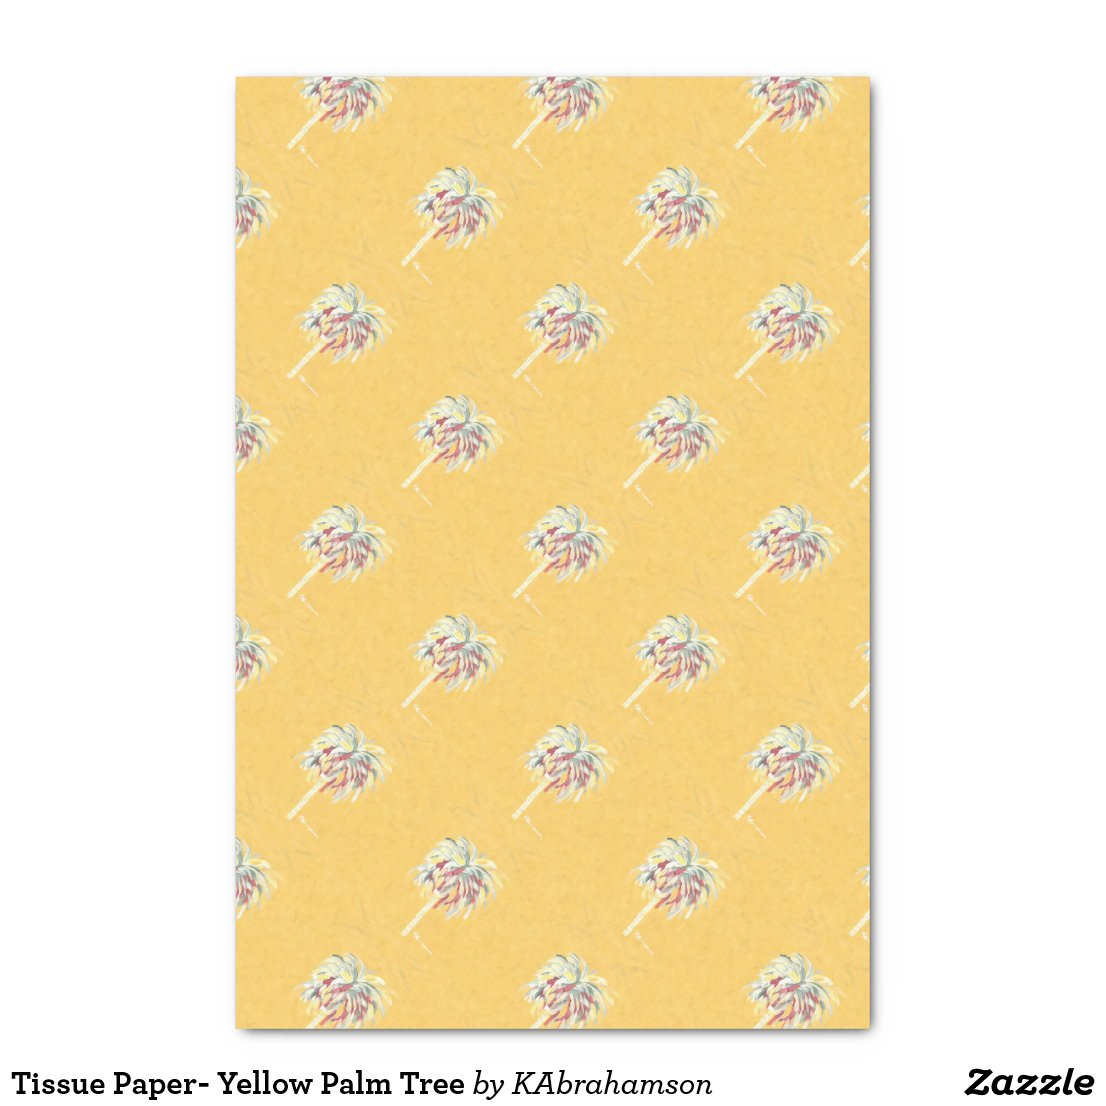 Tissue Paper- Yellow Palm Tree Tissue Paper